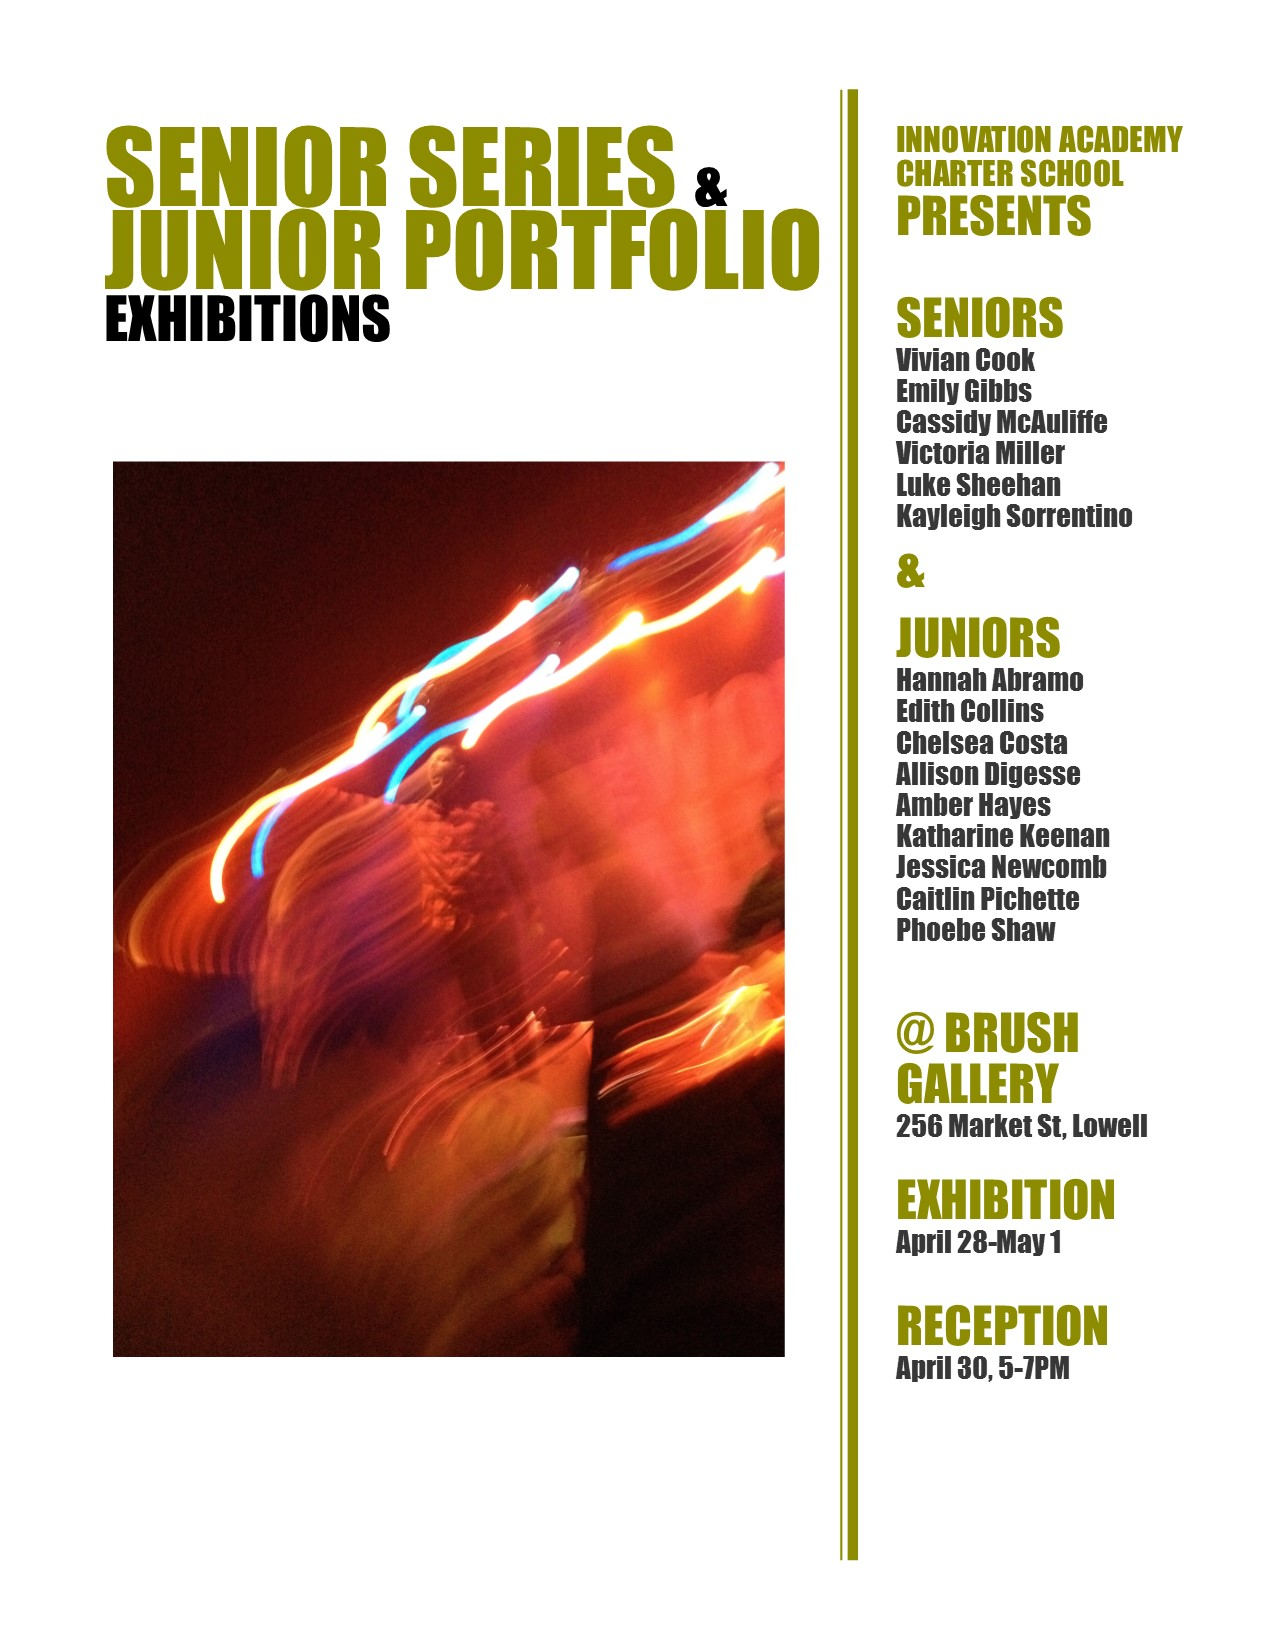 IACS Artists Present Senior Series and Junior Portfolio Exhibition